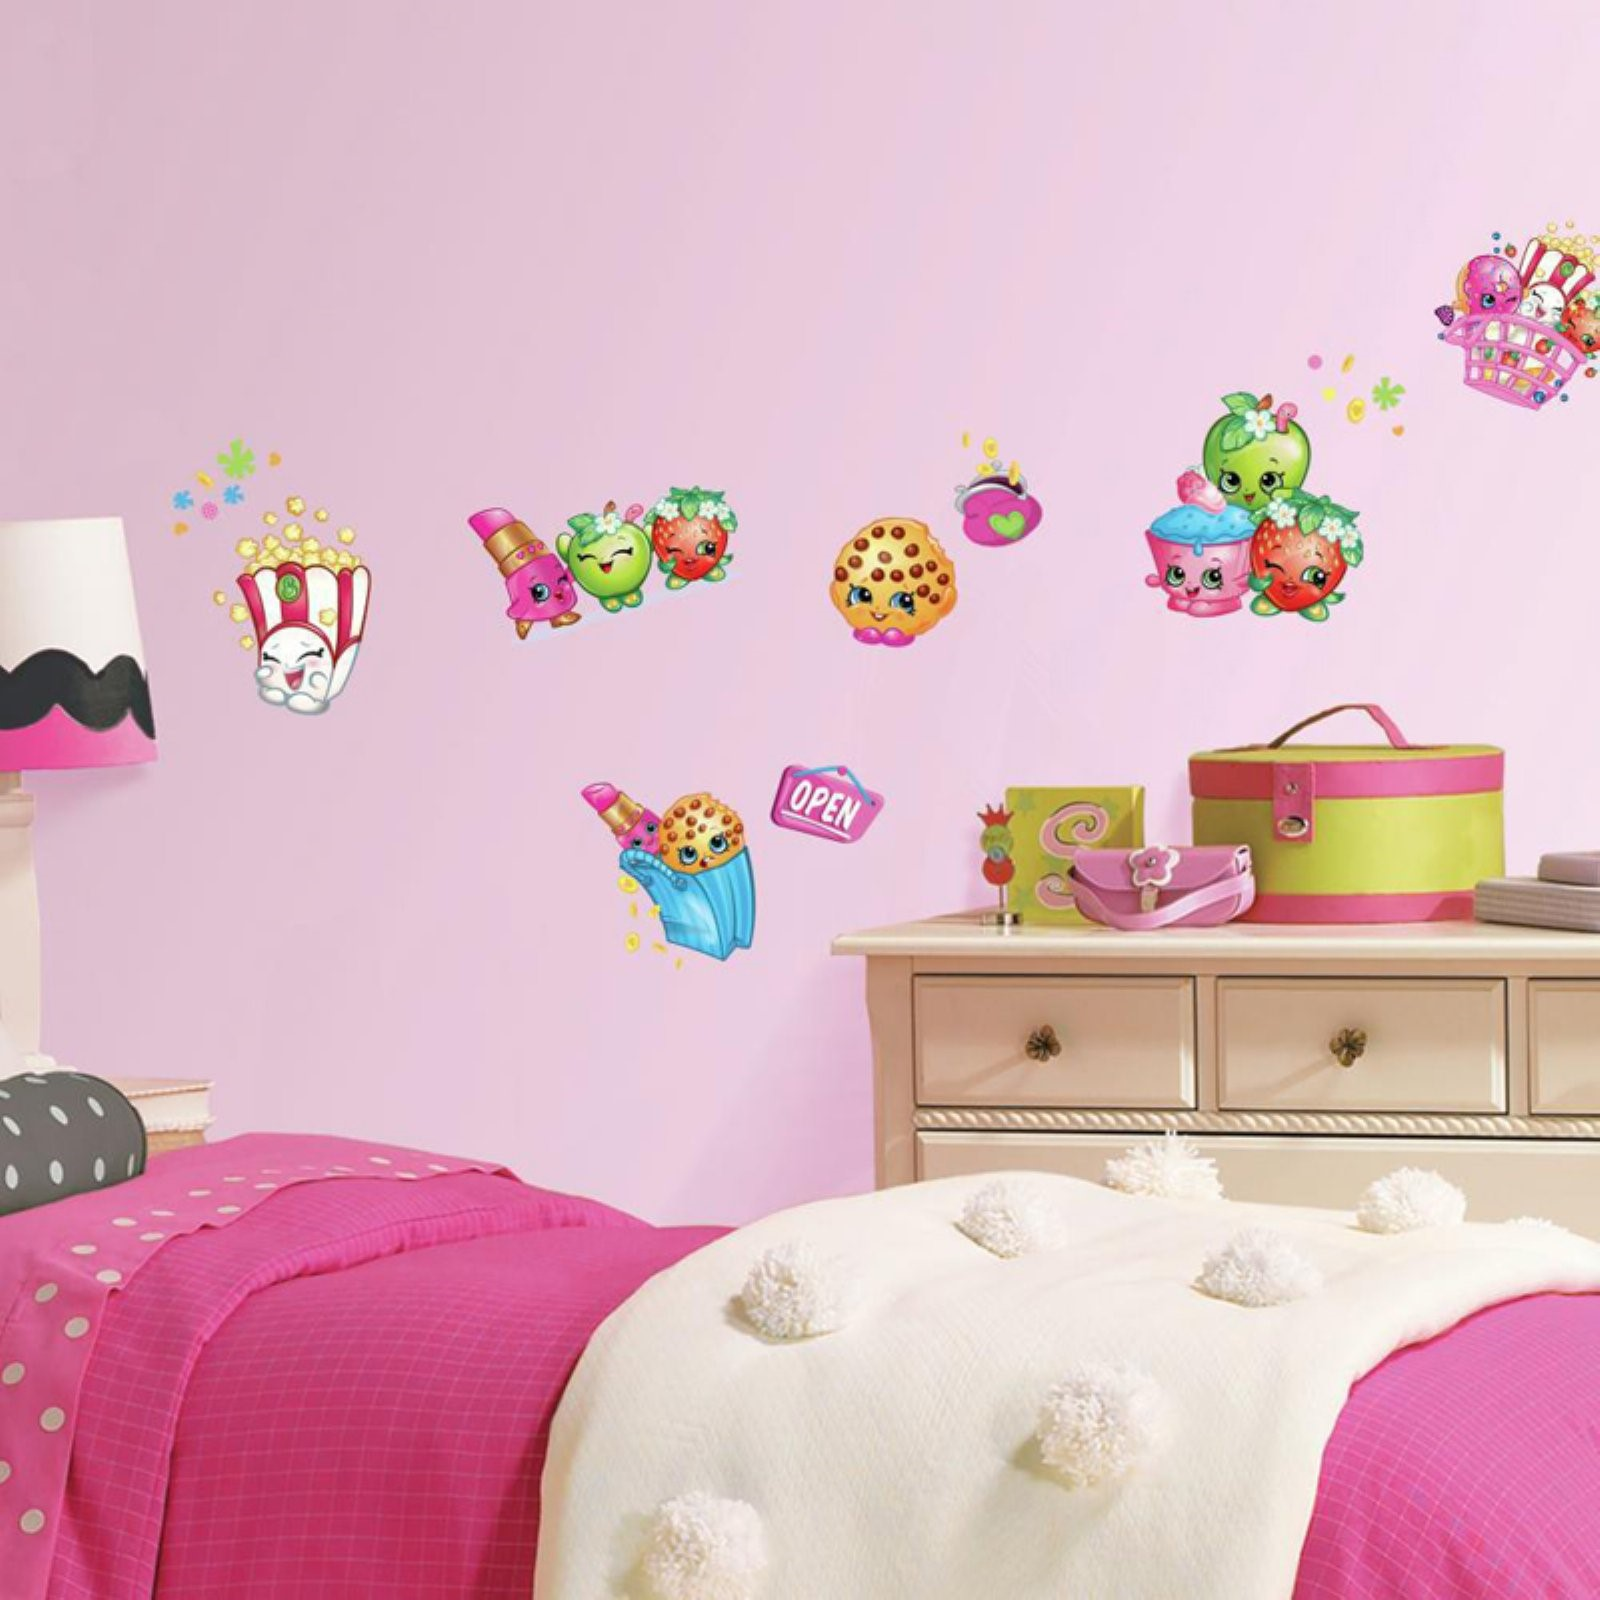 RoomMates Shopkins Peel and Stick Wall Decals Walmartcom